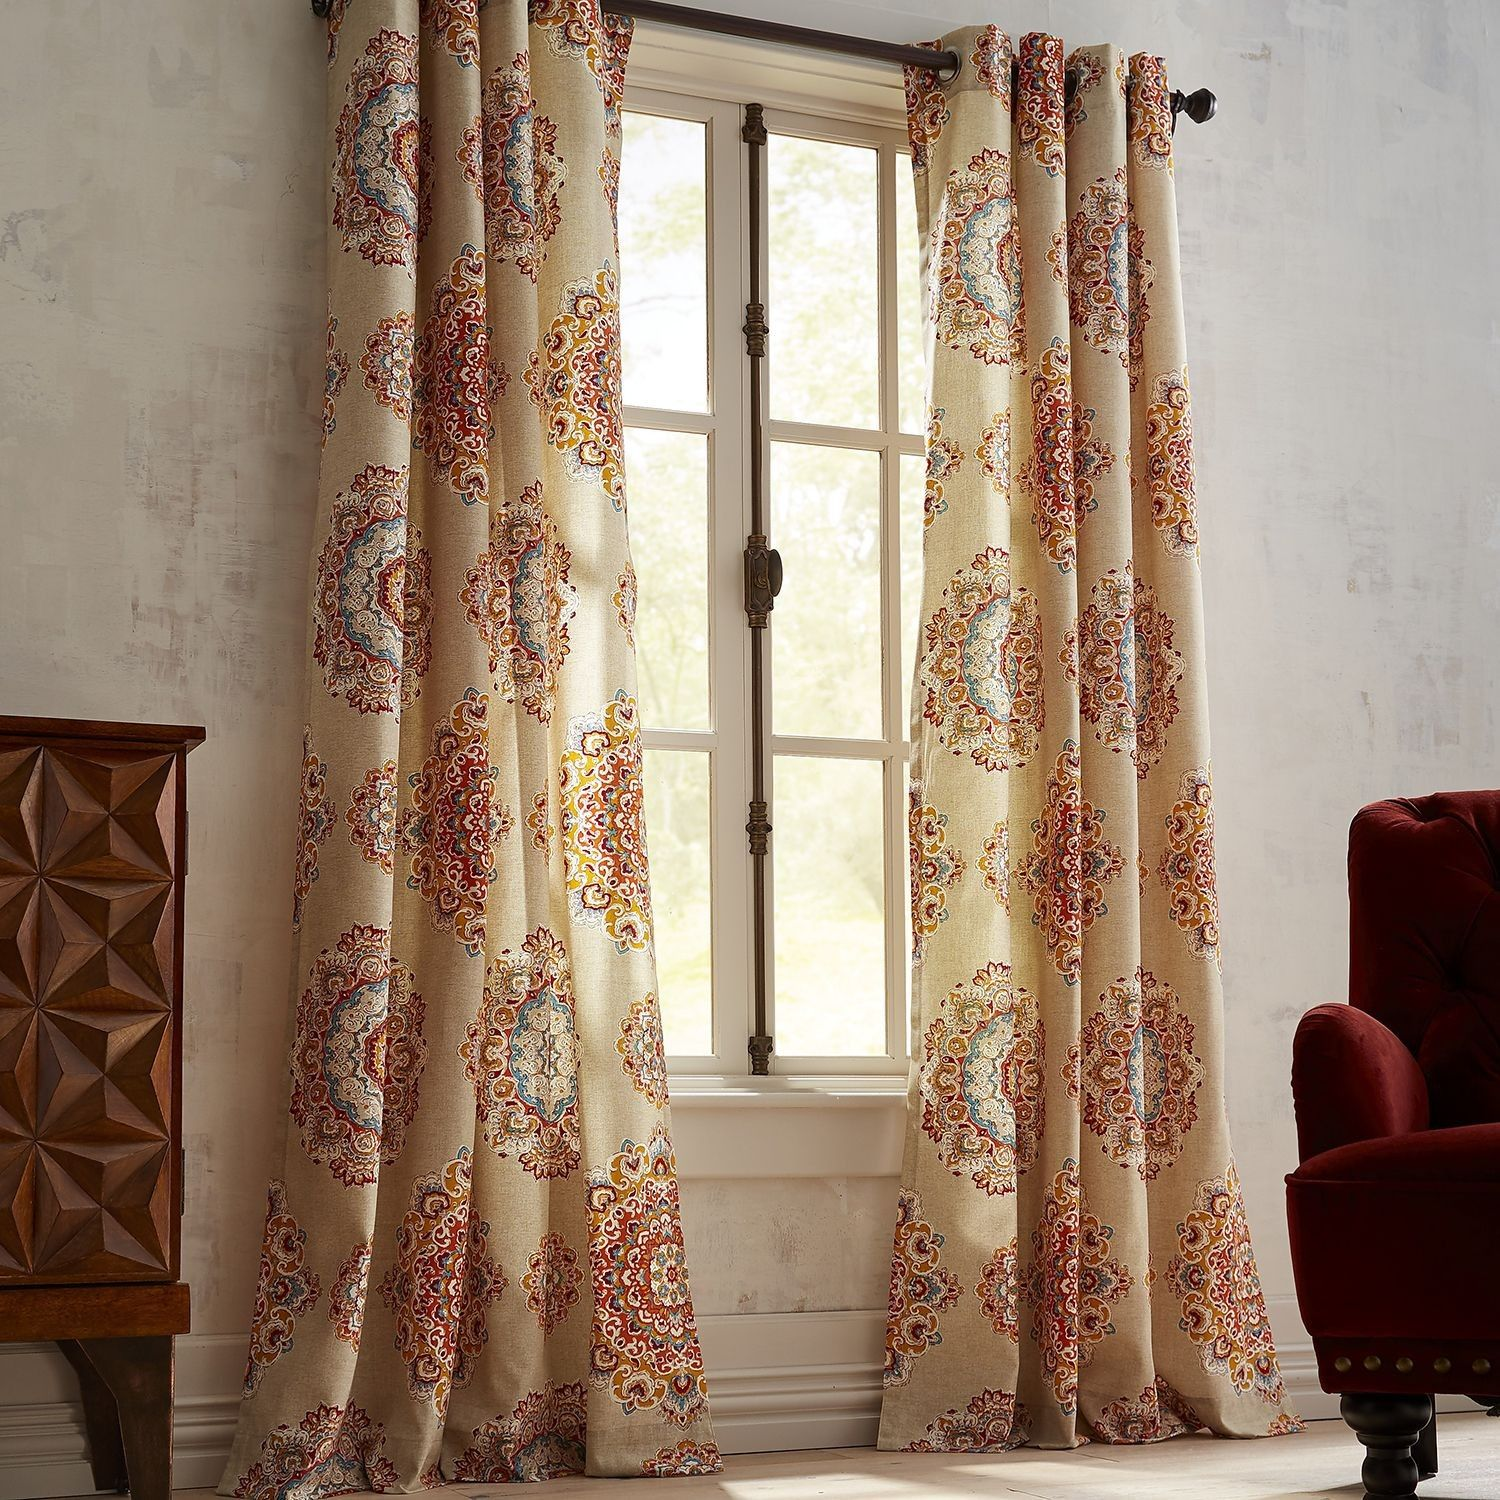 Asian inspired window coverings very